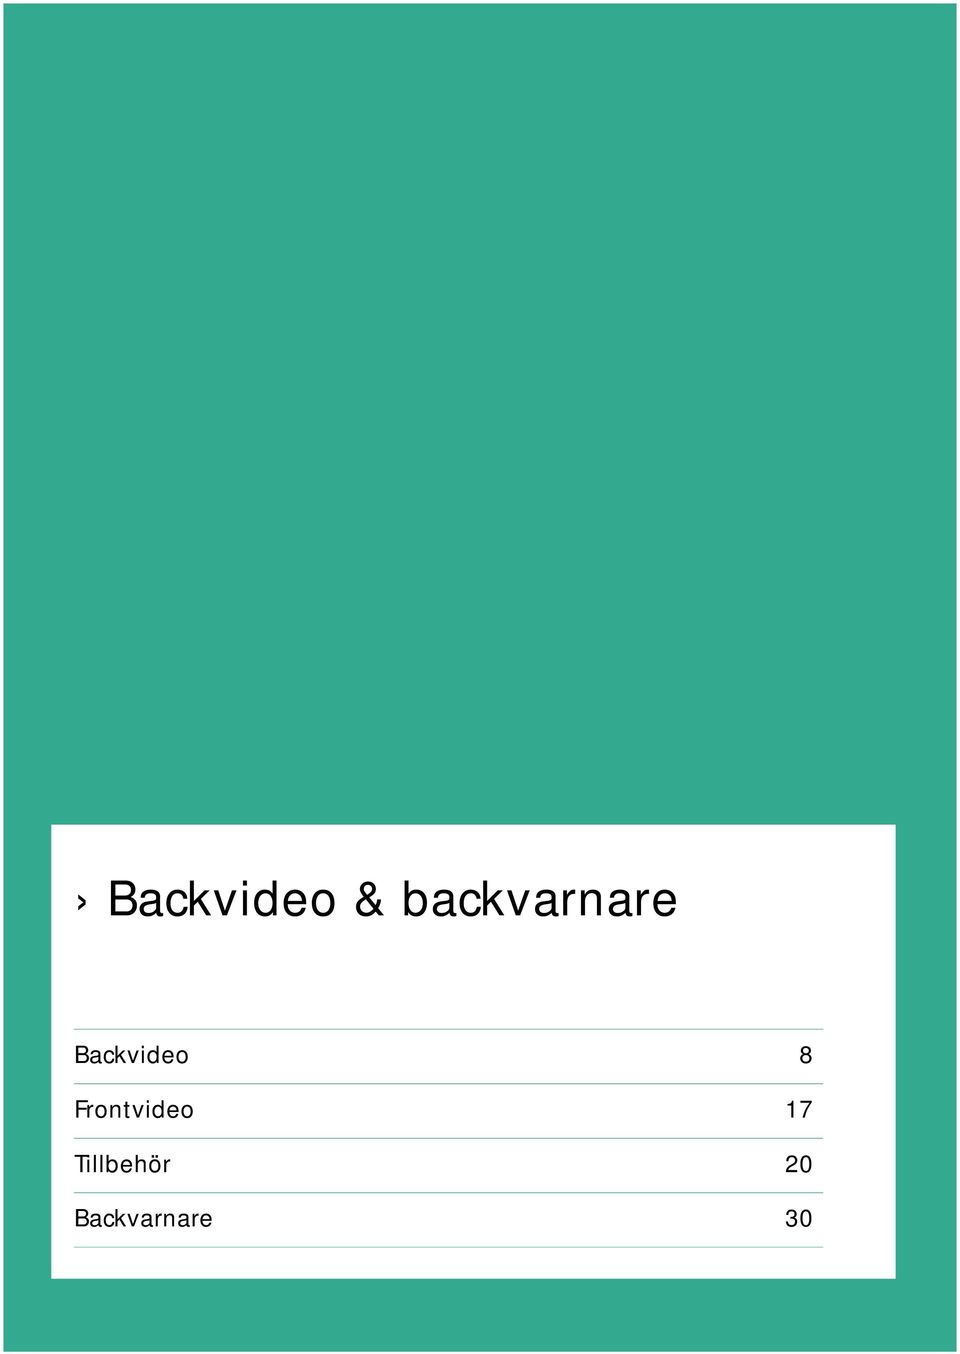 Backvideo 8